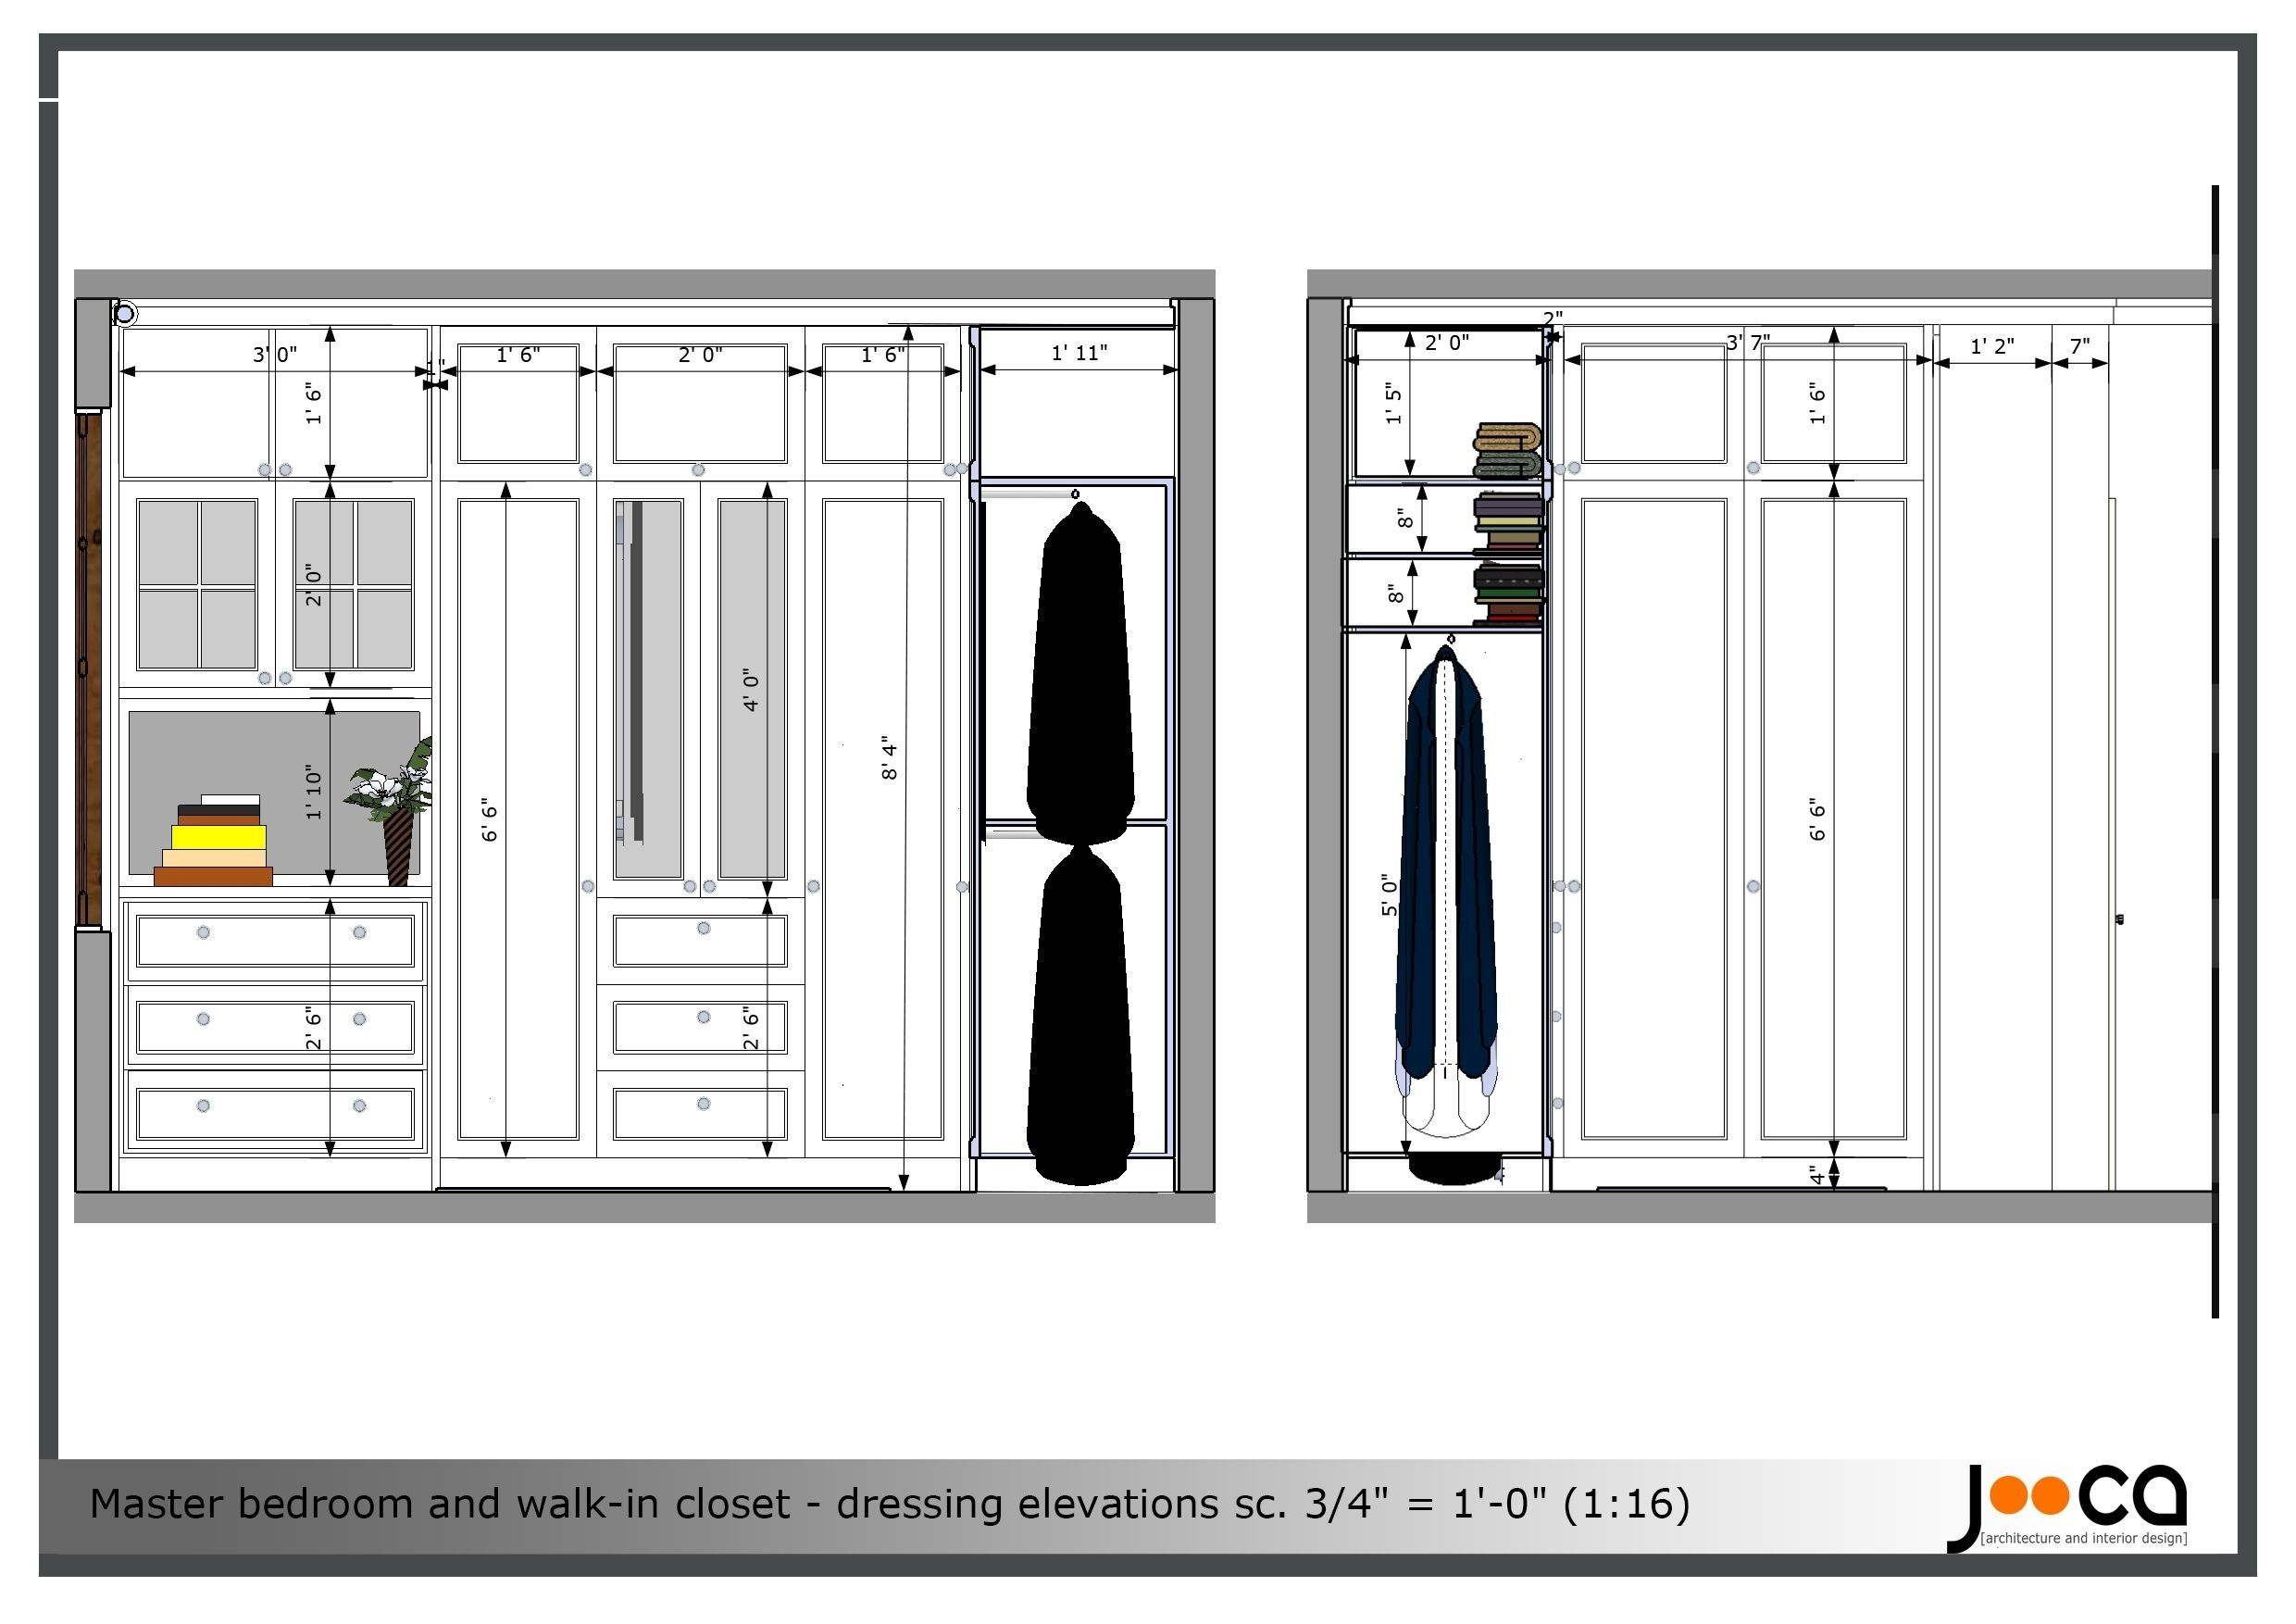 Bedroom Closet Depth Minimum